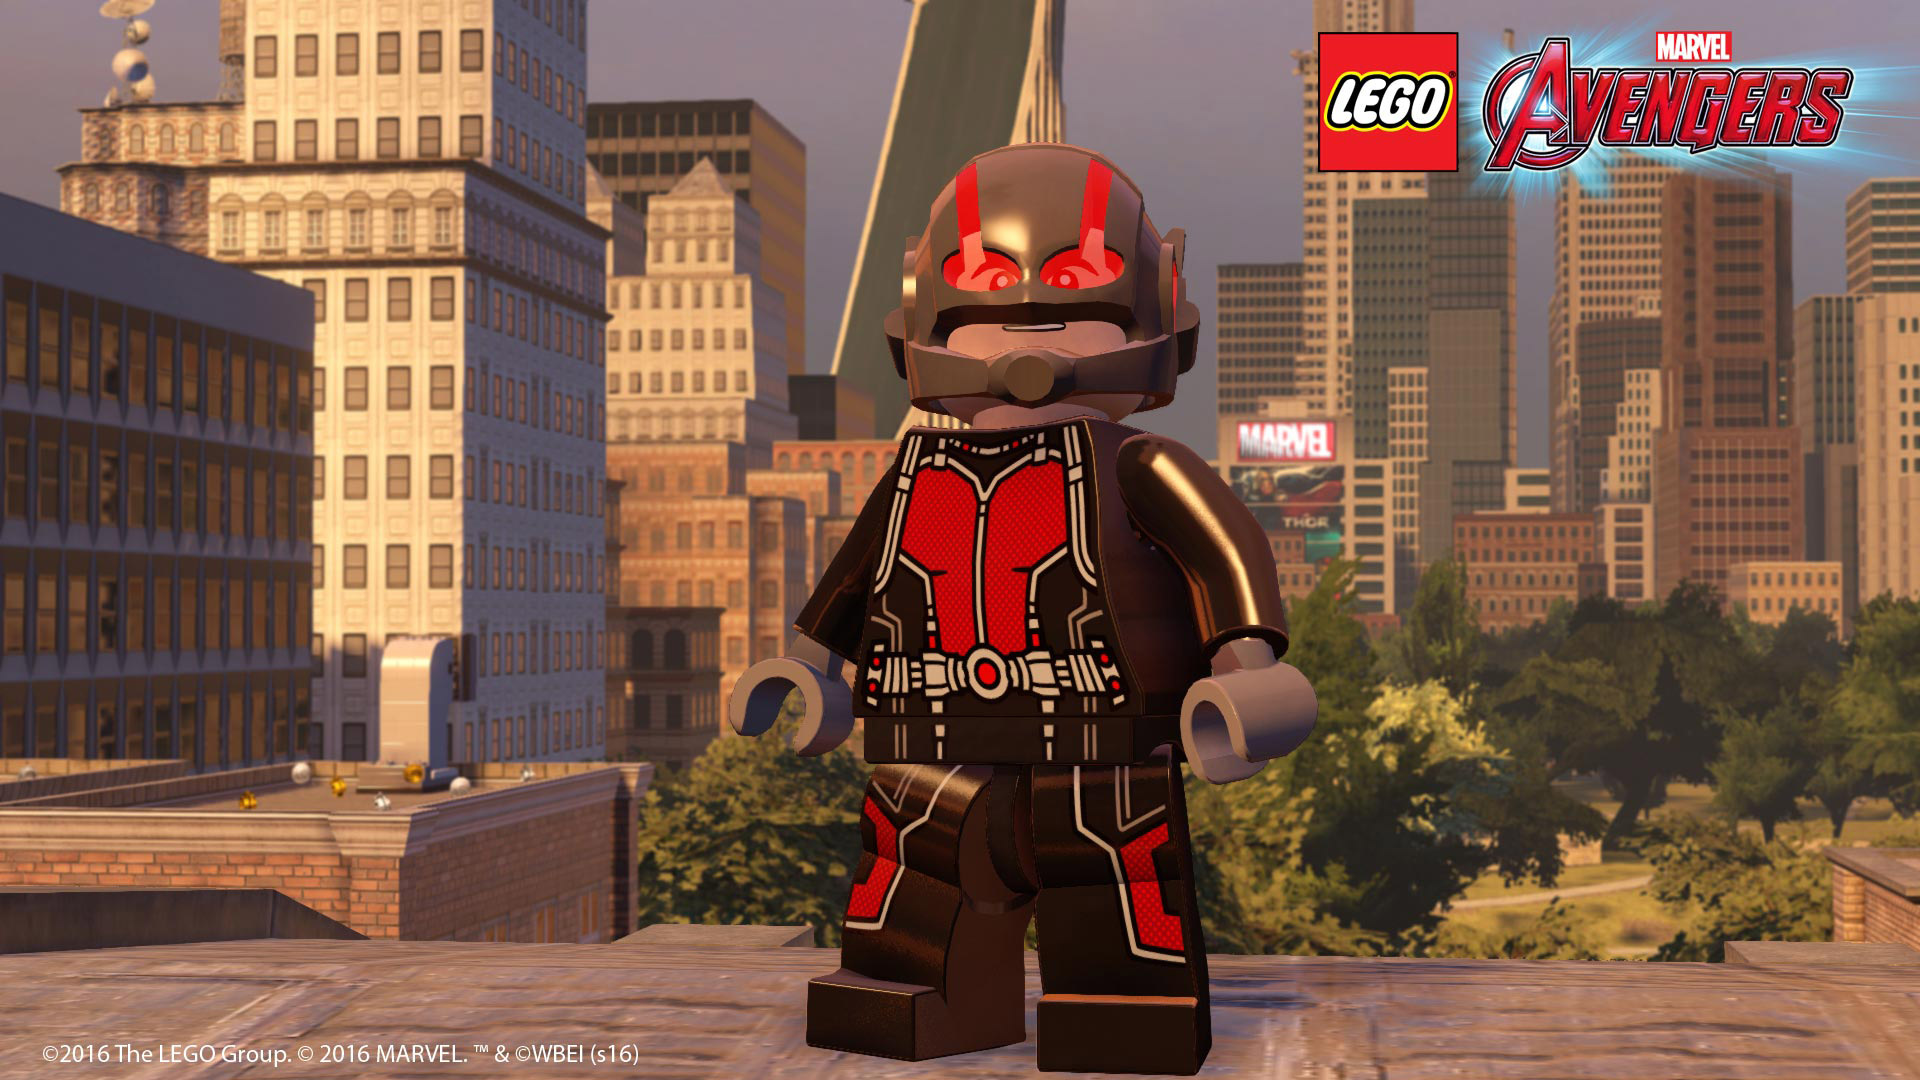 Lego Marvel's Avengers Wallpaper in 1920x1080